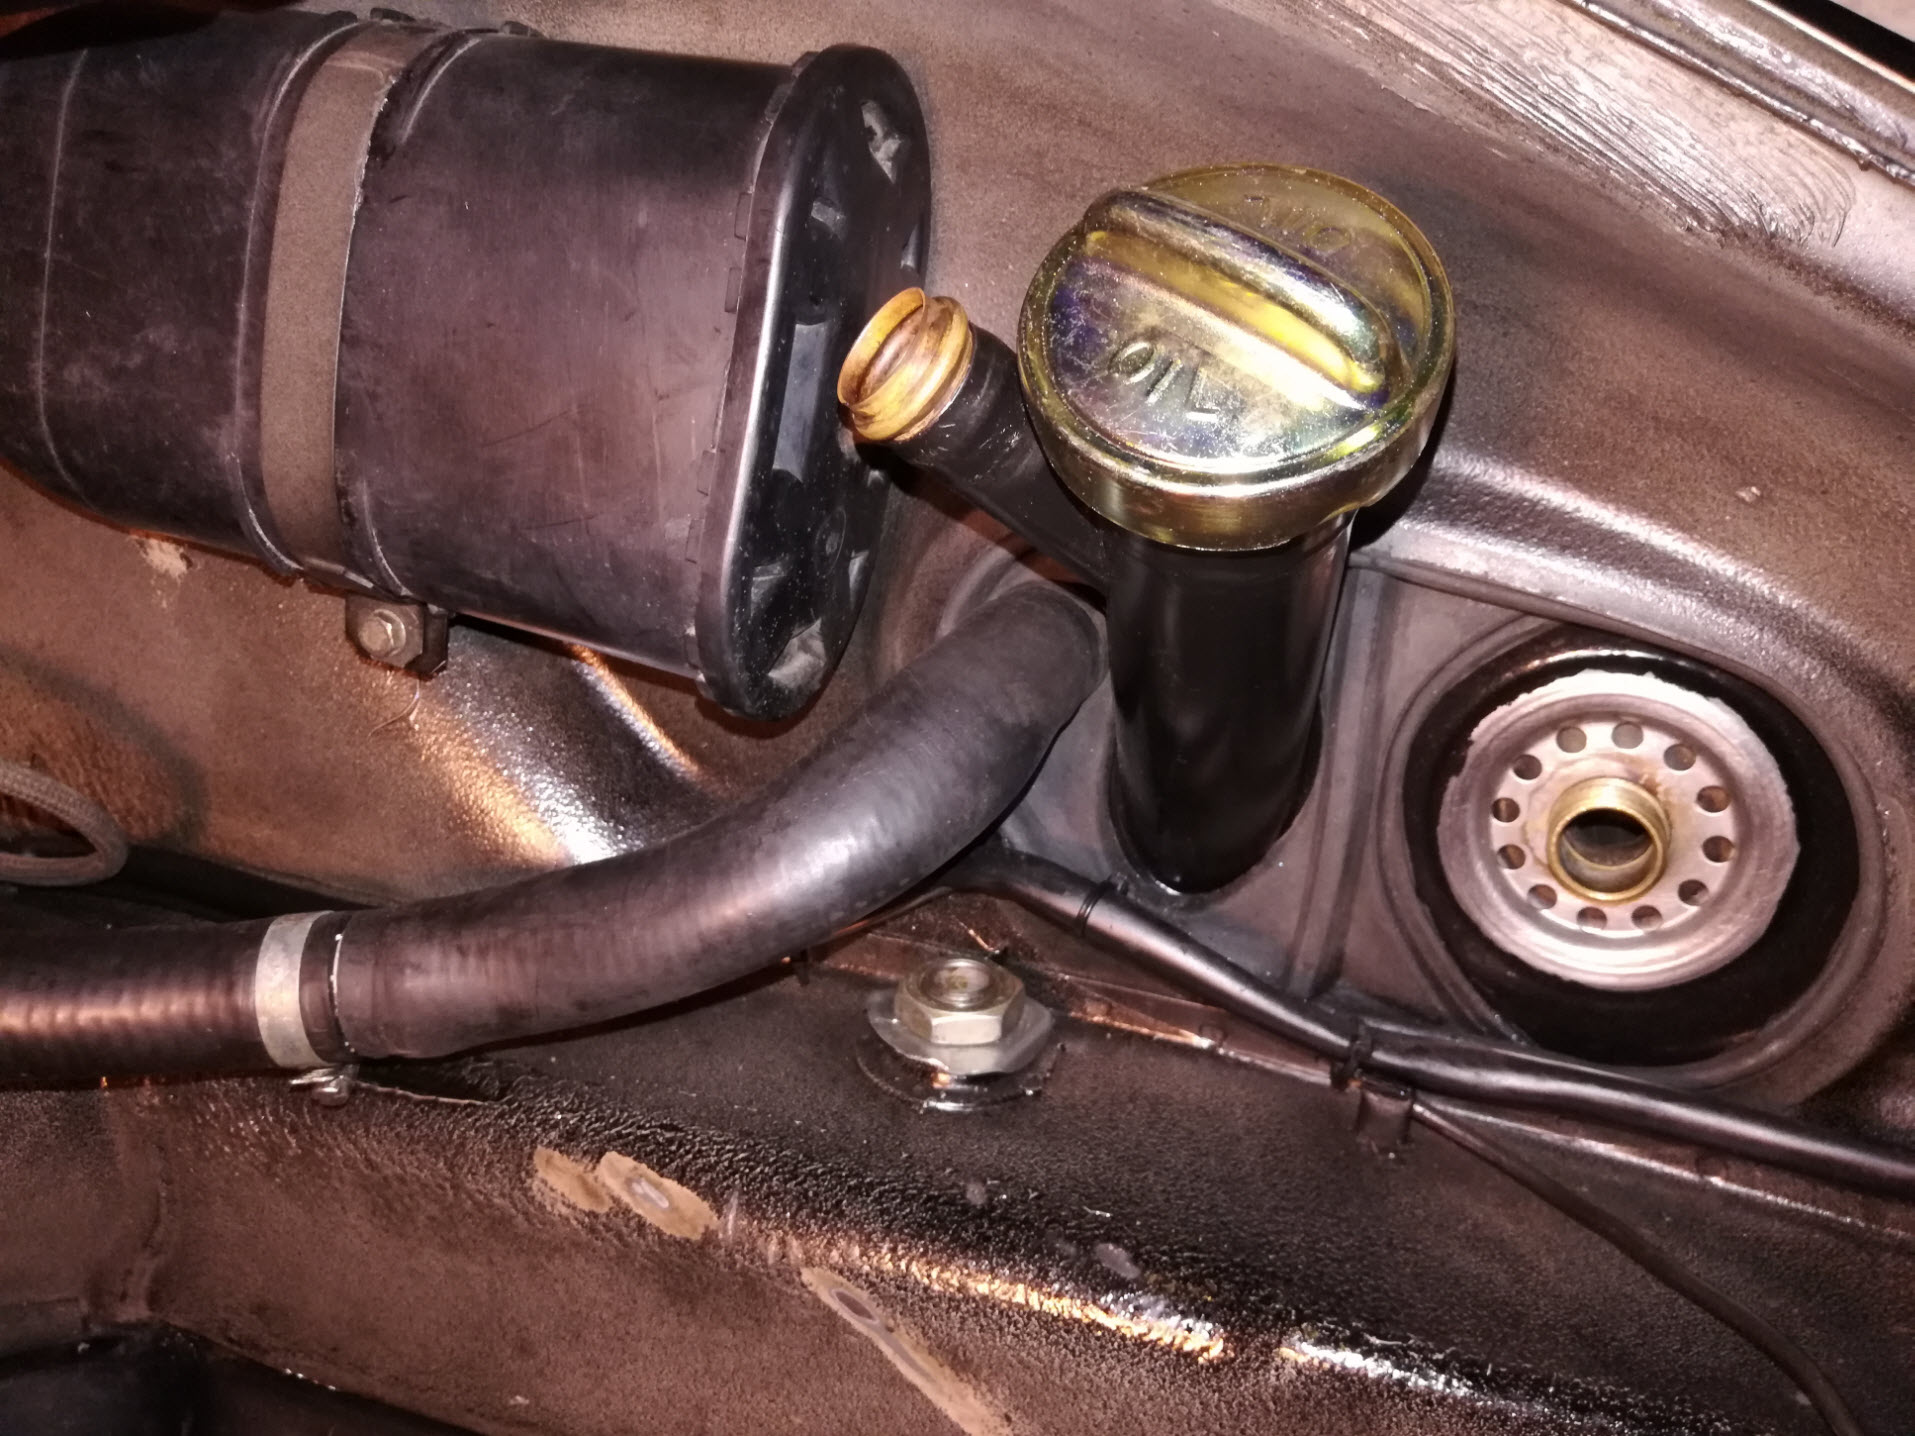 Porsche 911 oil breather restrictor re-install.